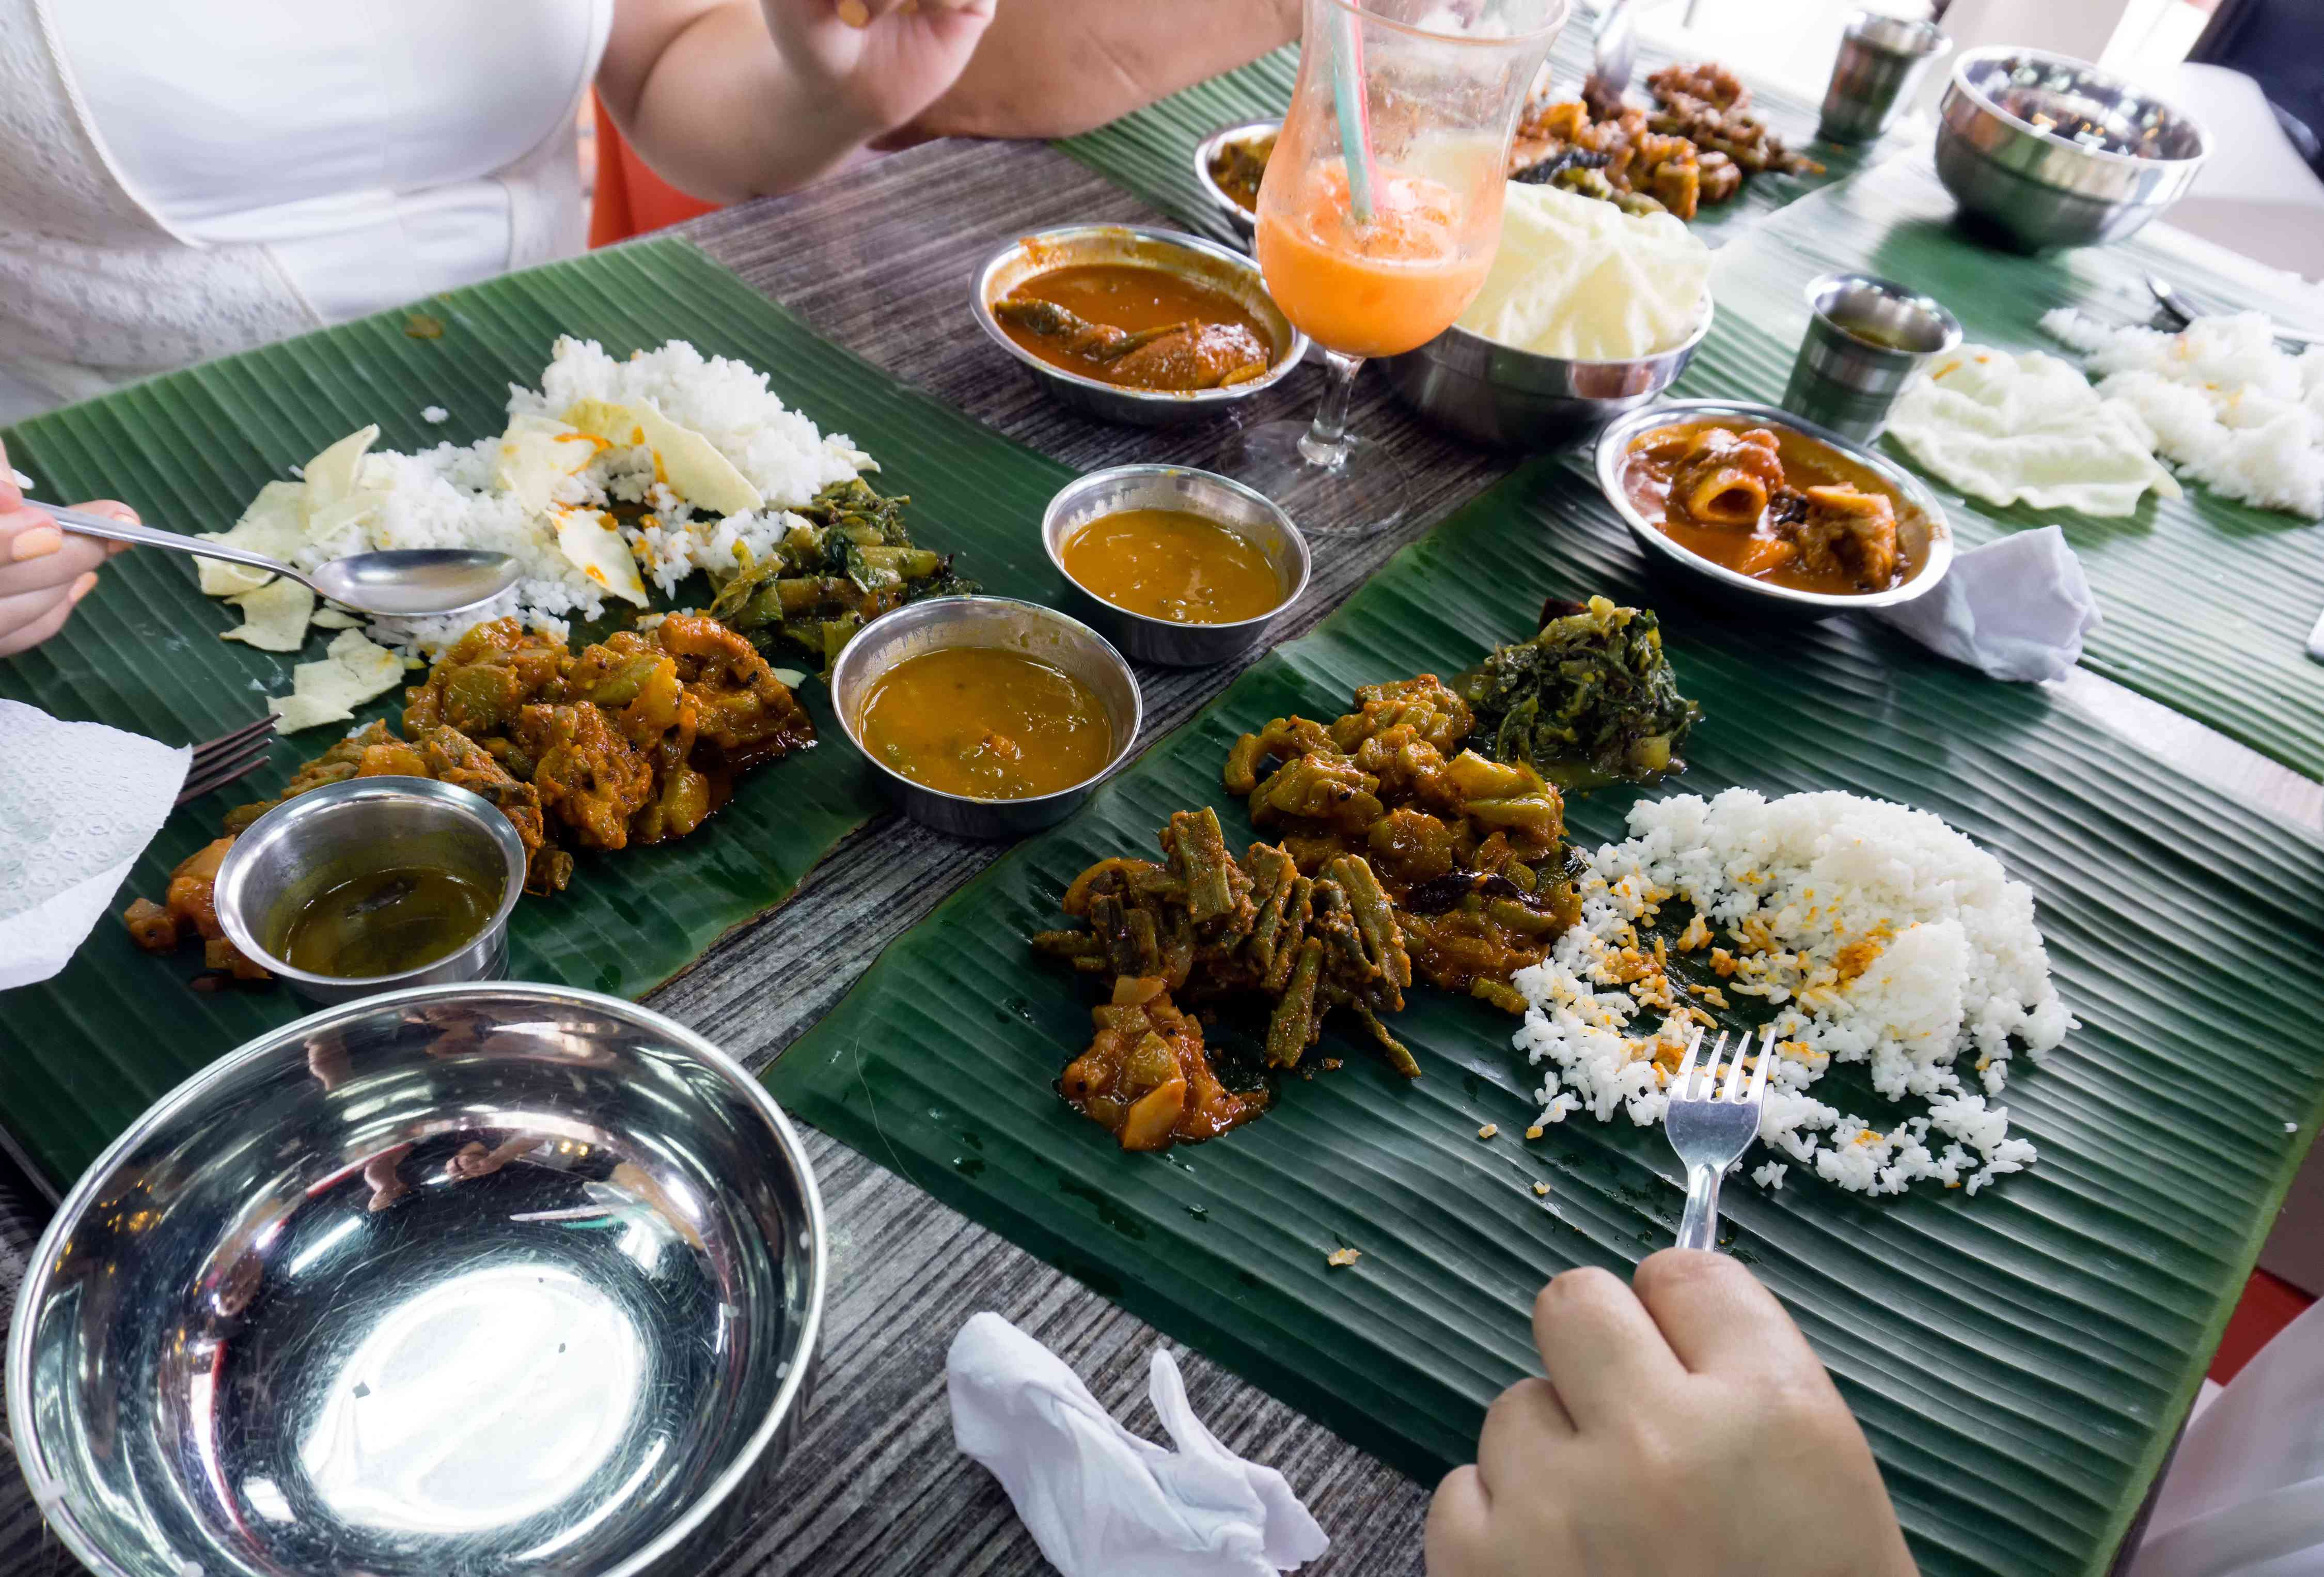 People eating Indian food and curry on a banan leaf